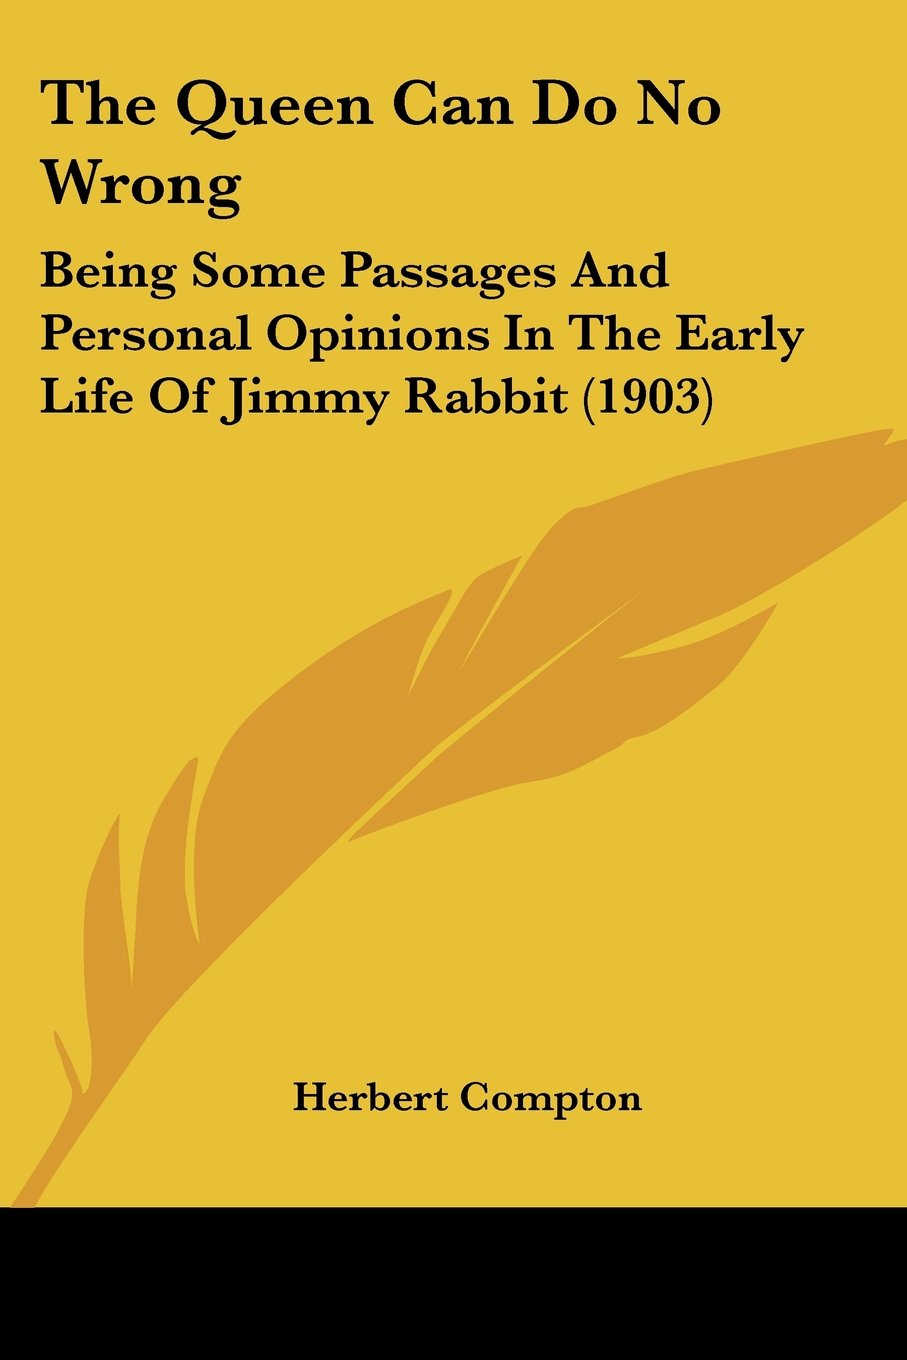 Download The Queen Can Do No Wrong: Being Some Passages And Personal Opinions In The Early Life Of Jimmy Rabbit (1903) PDF